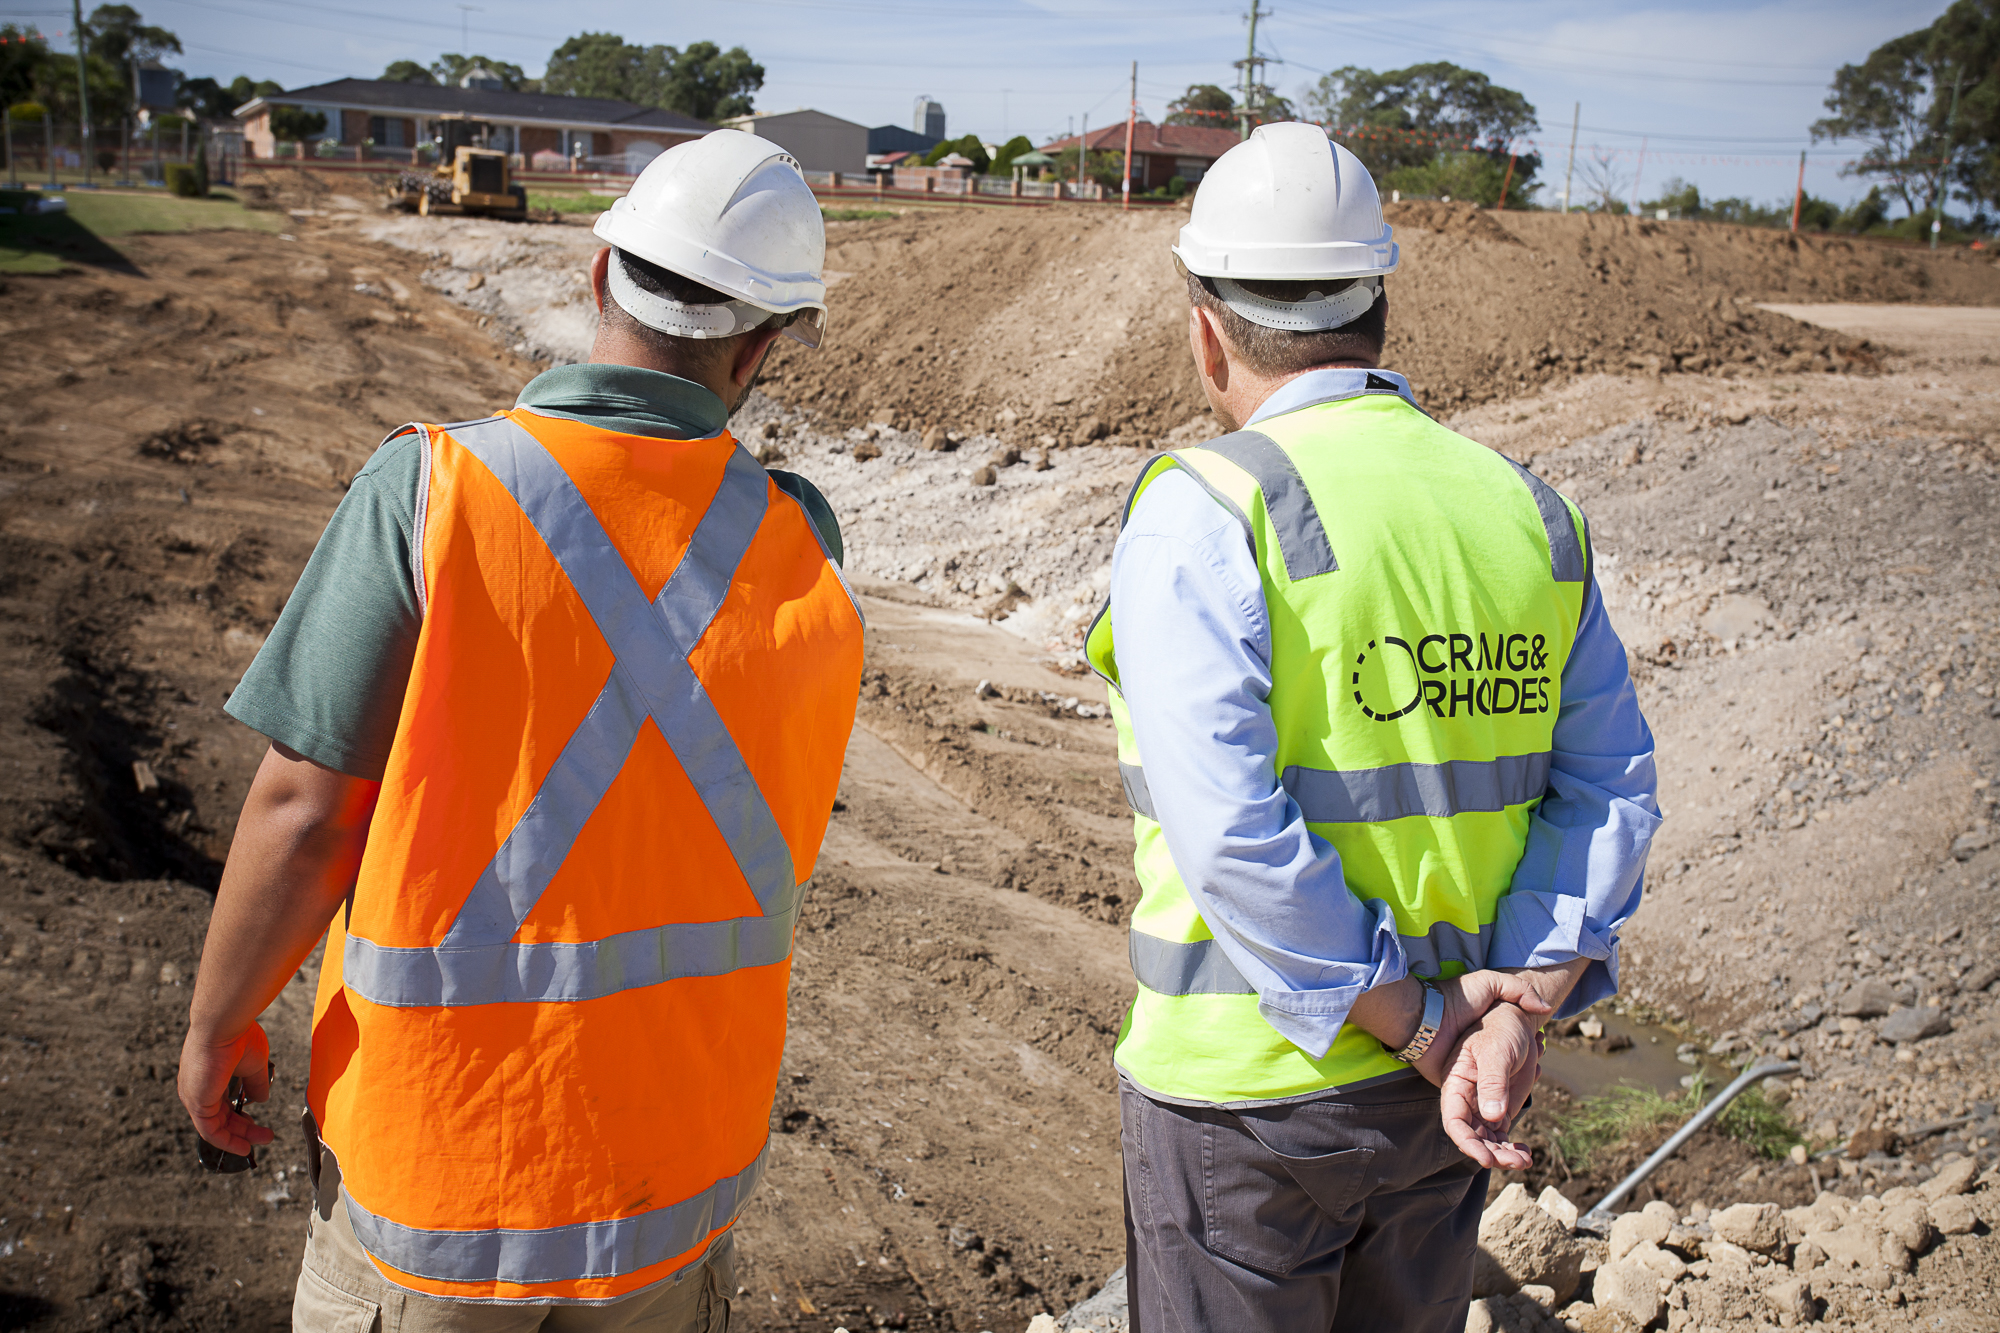 In good company with The Surveyor